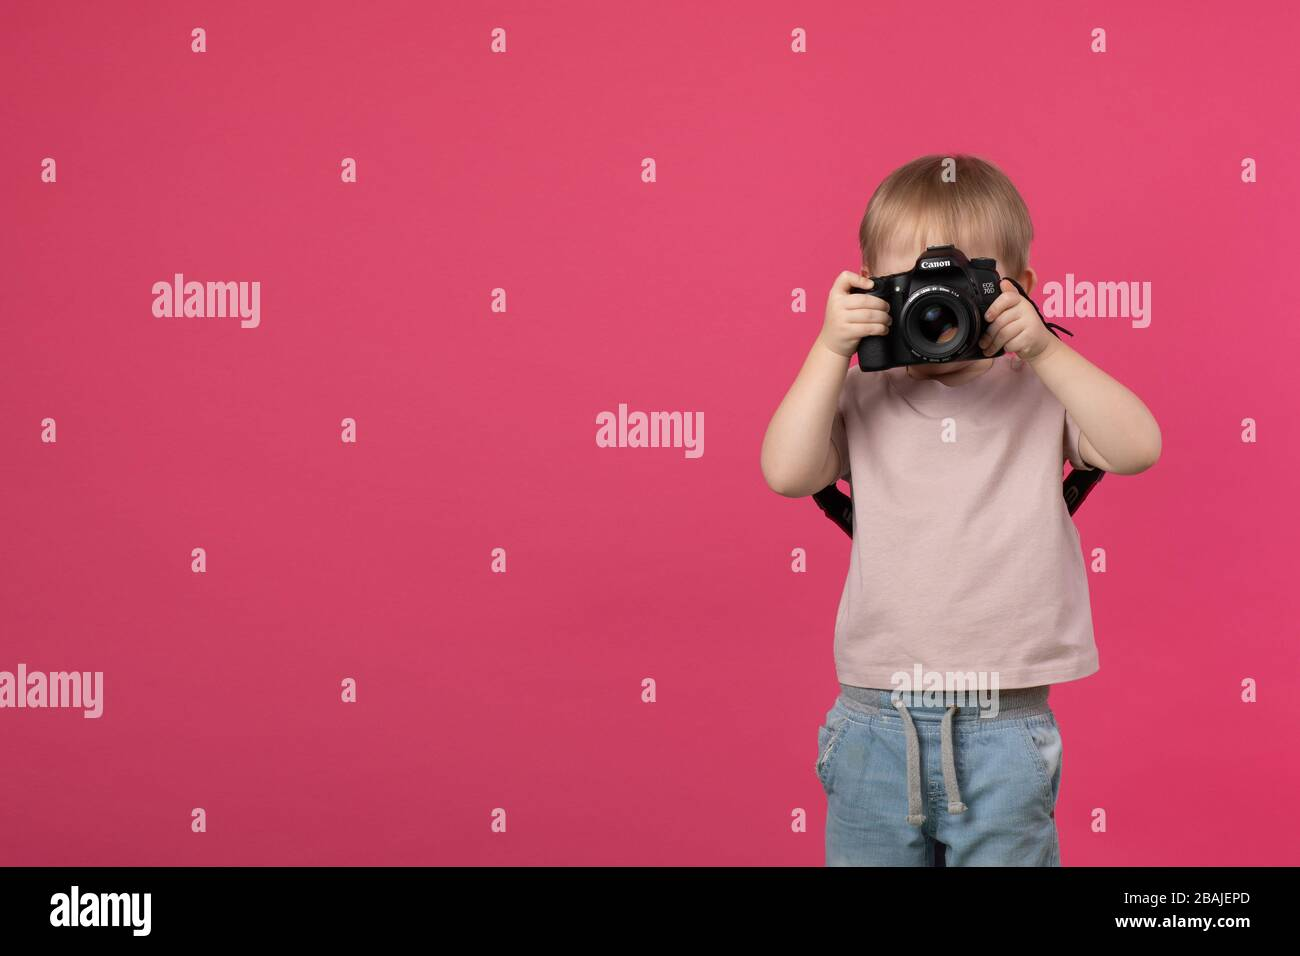 SAINT-PETERSBURG, RUSSIA - MARCH 22, 2020: A child boy stands and holds in his hands a Canon 70d camera with a lens with an EF 50mm 1.4 mount and take Stock Photo